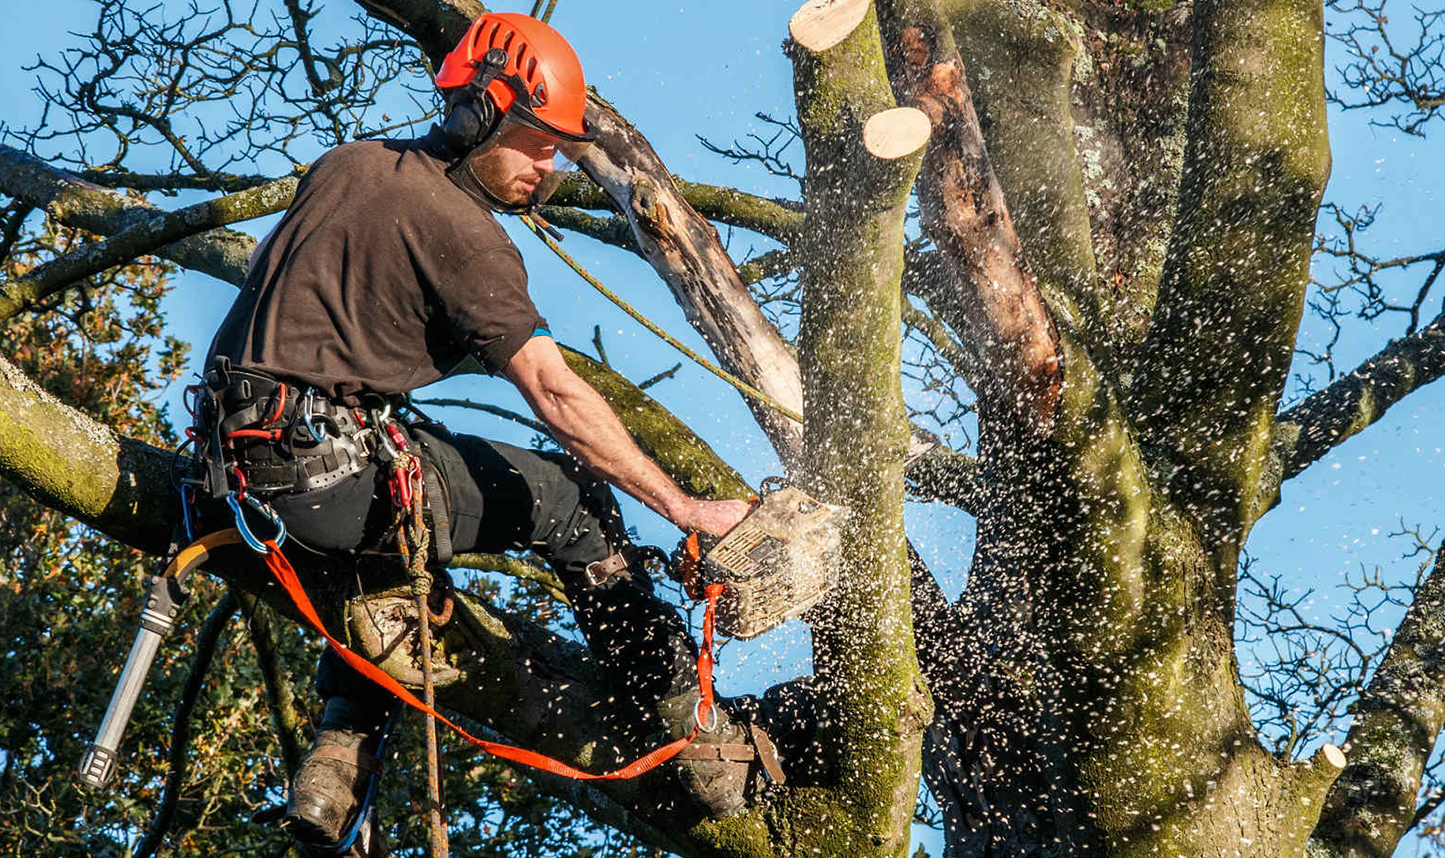 Questions You Should Ask When Hiring a Tree Trimming Company